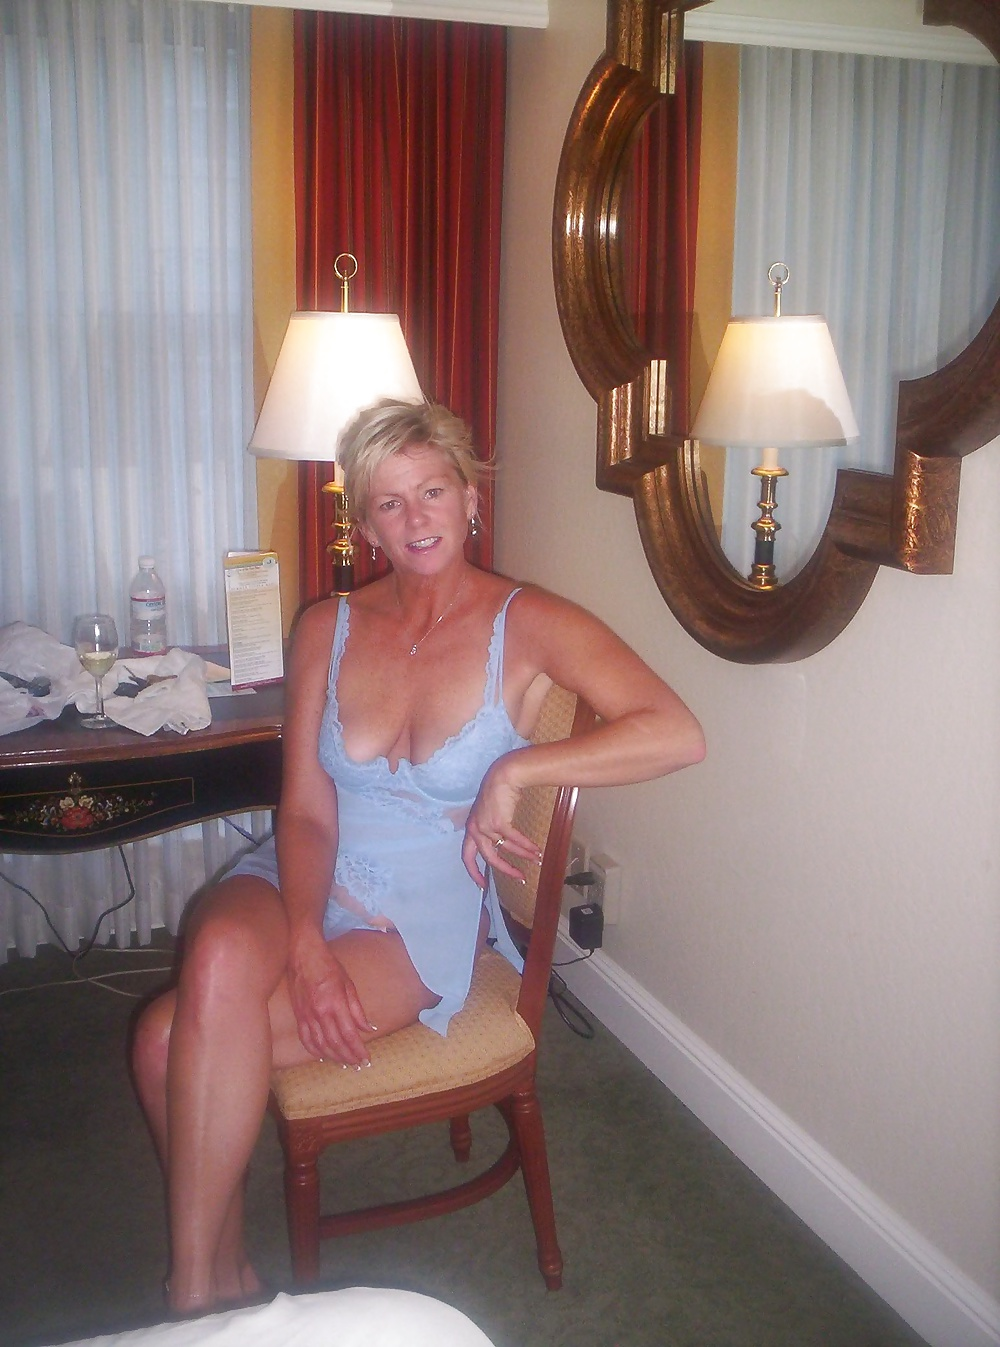 Hot english blonde bating in pub toilets - 2 part 5